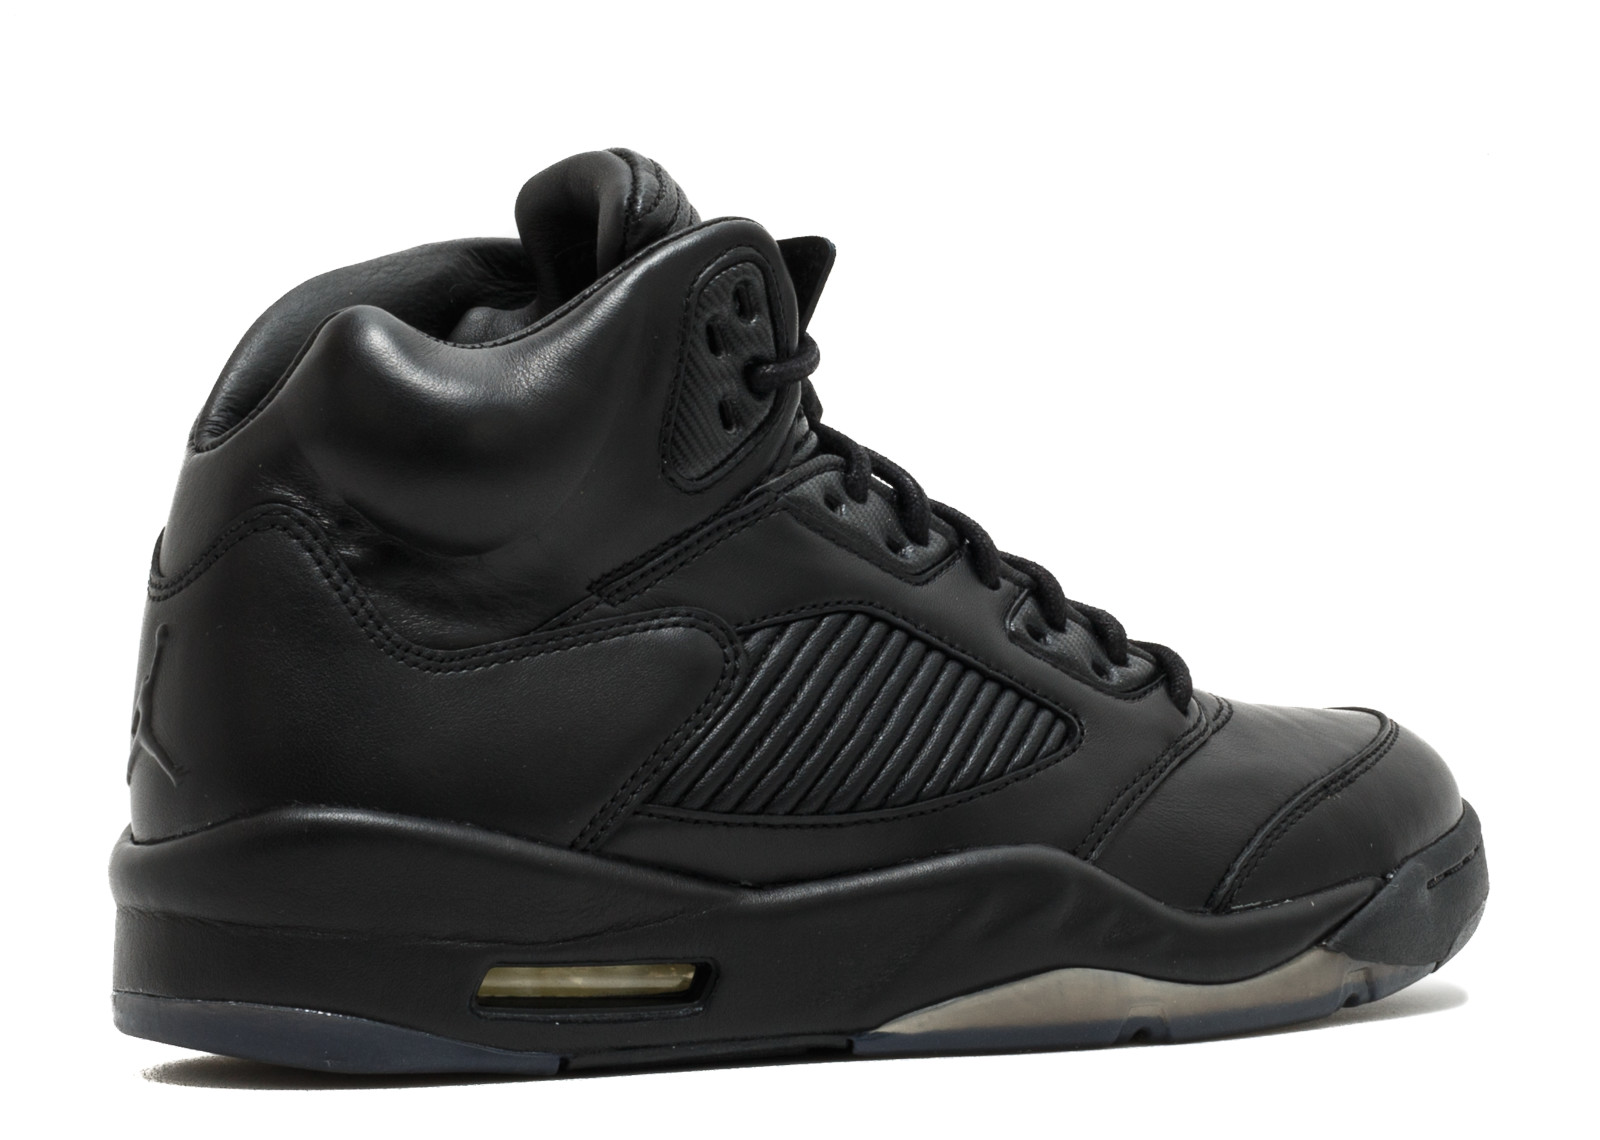 air jordan 5 retro prem - Click Image to Close